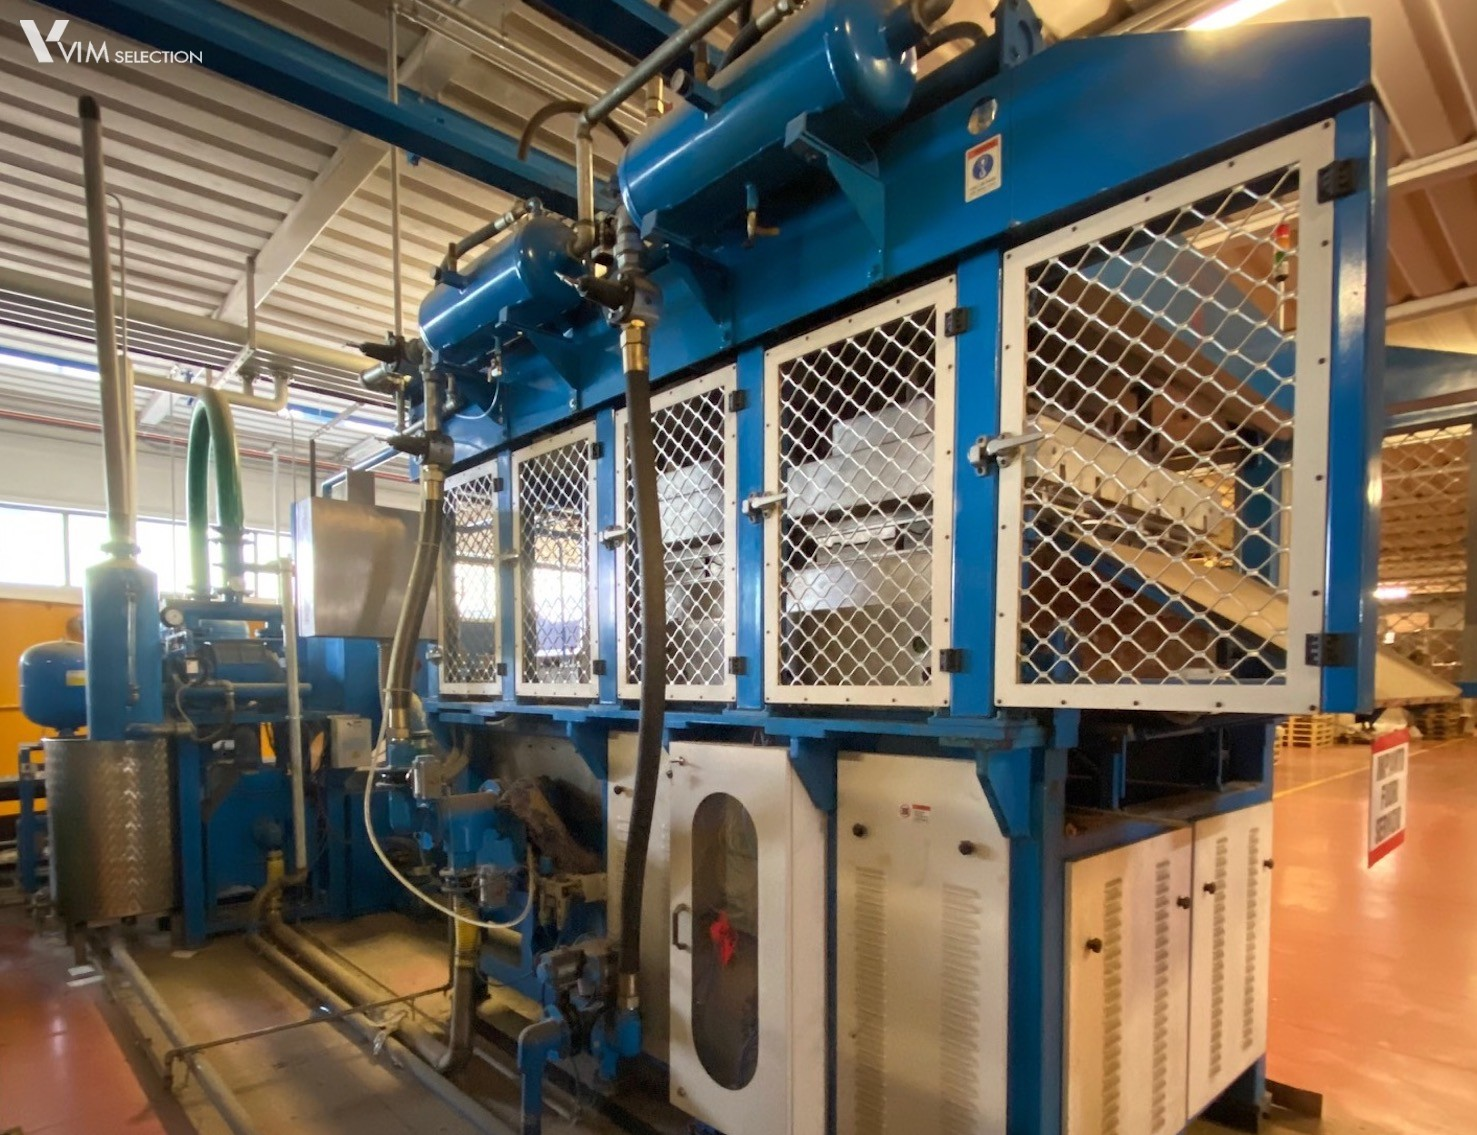 SODALTECH Pulp Moulding plant – Egg Tray Making Machine